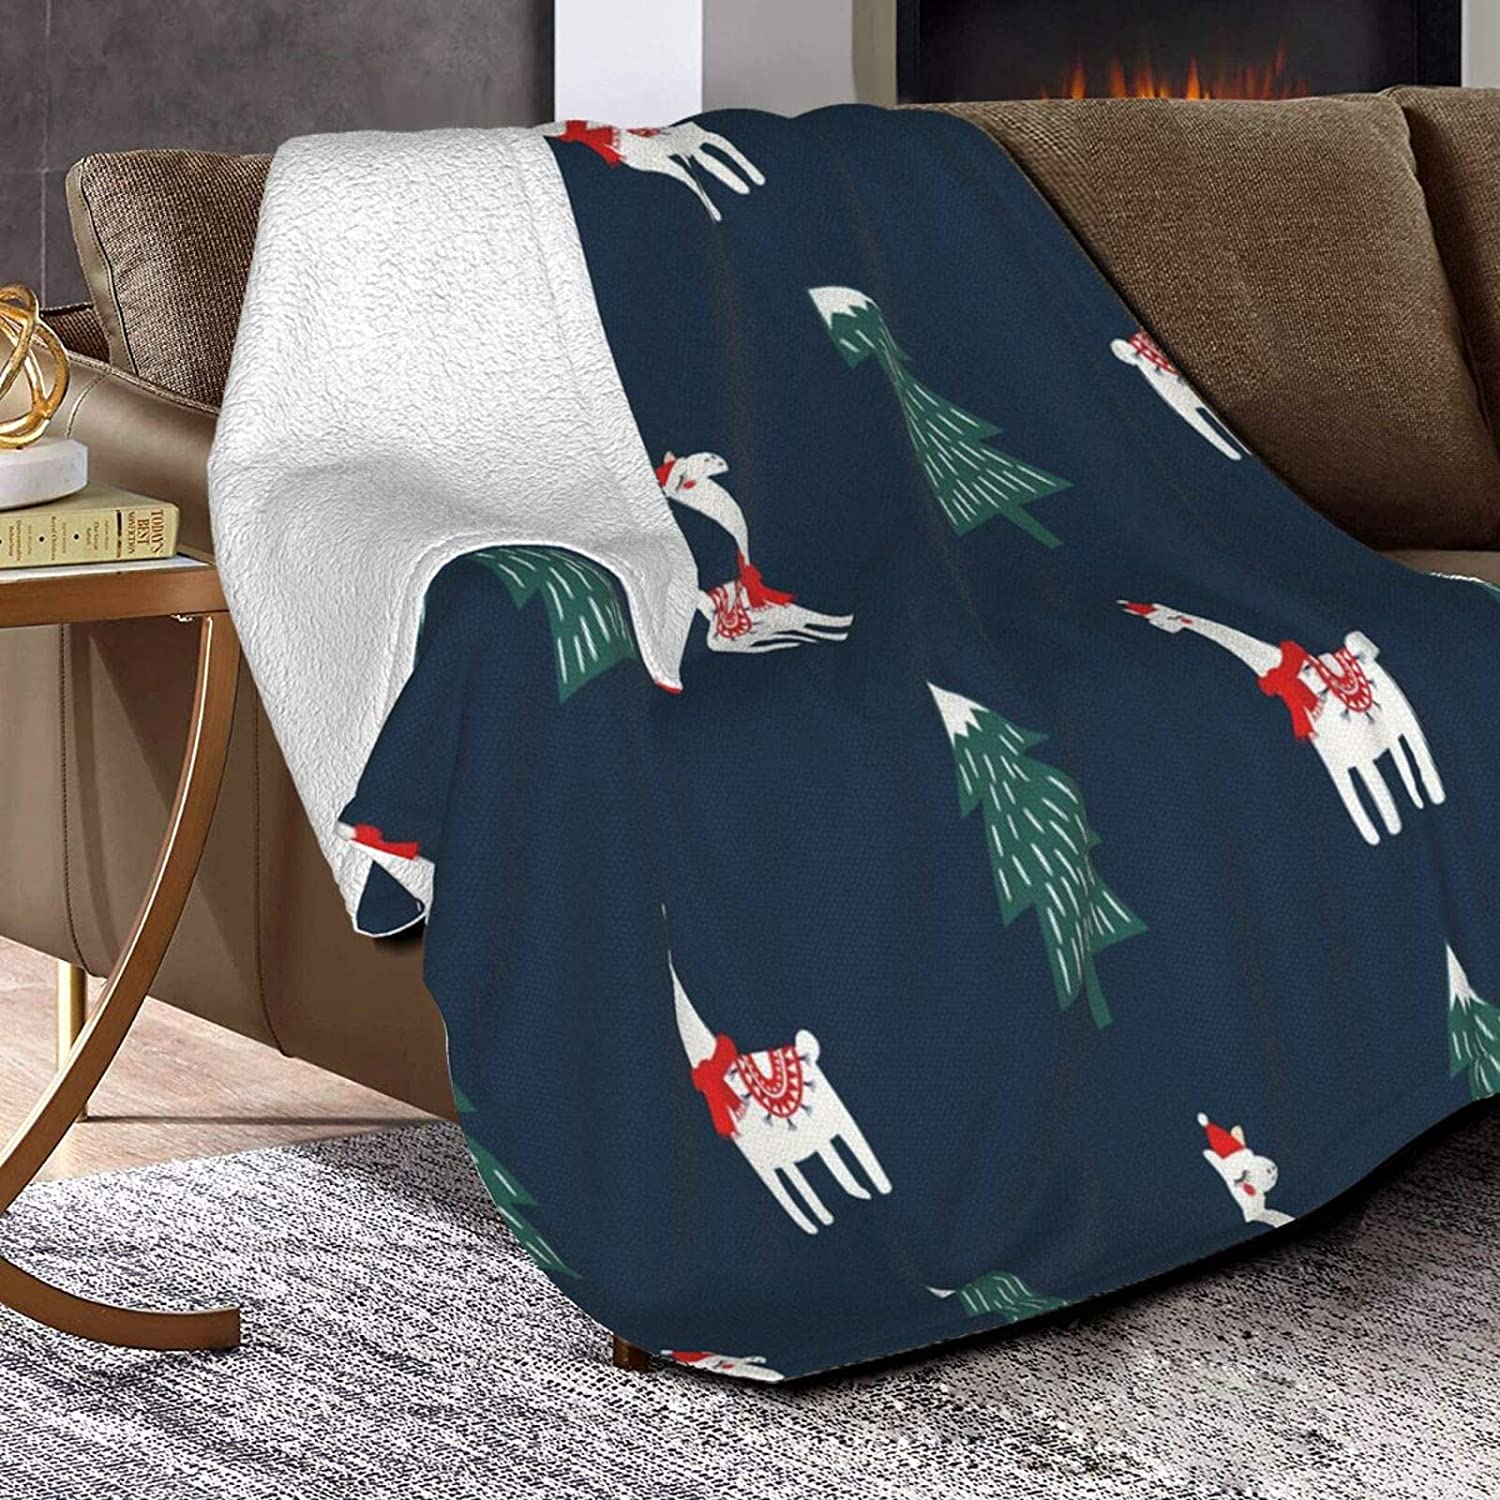 Flannel Fleece Blanket for Adult Kids,Soft Anti-Fleece Air Conditioning Blanket,Moss Green Beautiful Growth On Ground,Fleece Bed Sofa Couch Warm Throw Blanket 50x40